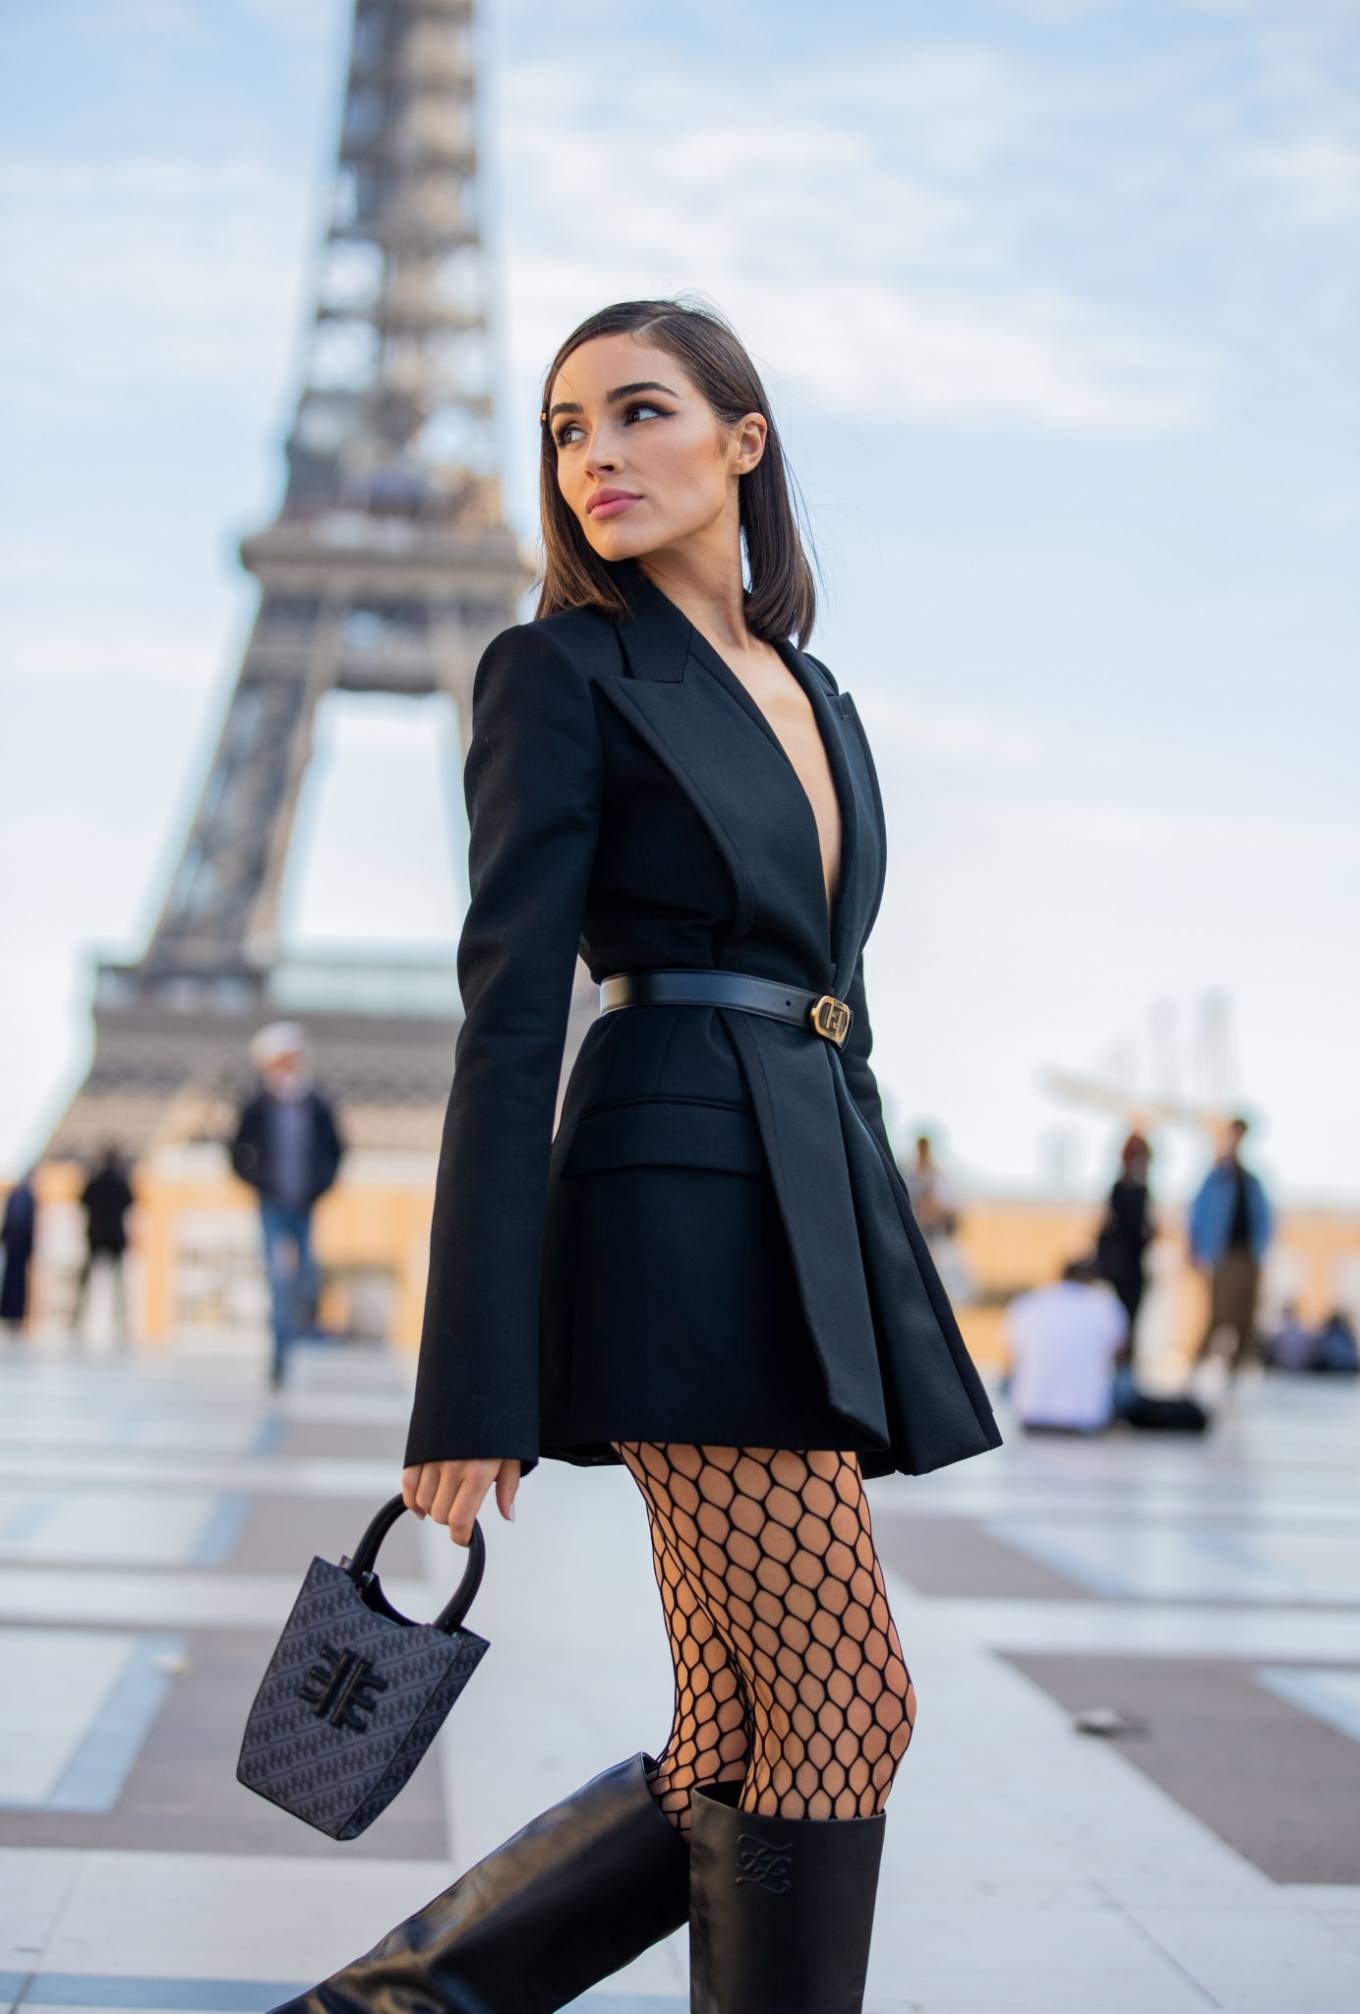 Olivia Culpo wearing a black structured Fendi satin tuxedo with a silk fabric, long sleeves, lapel collar and flap pockets